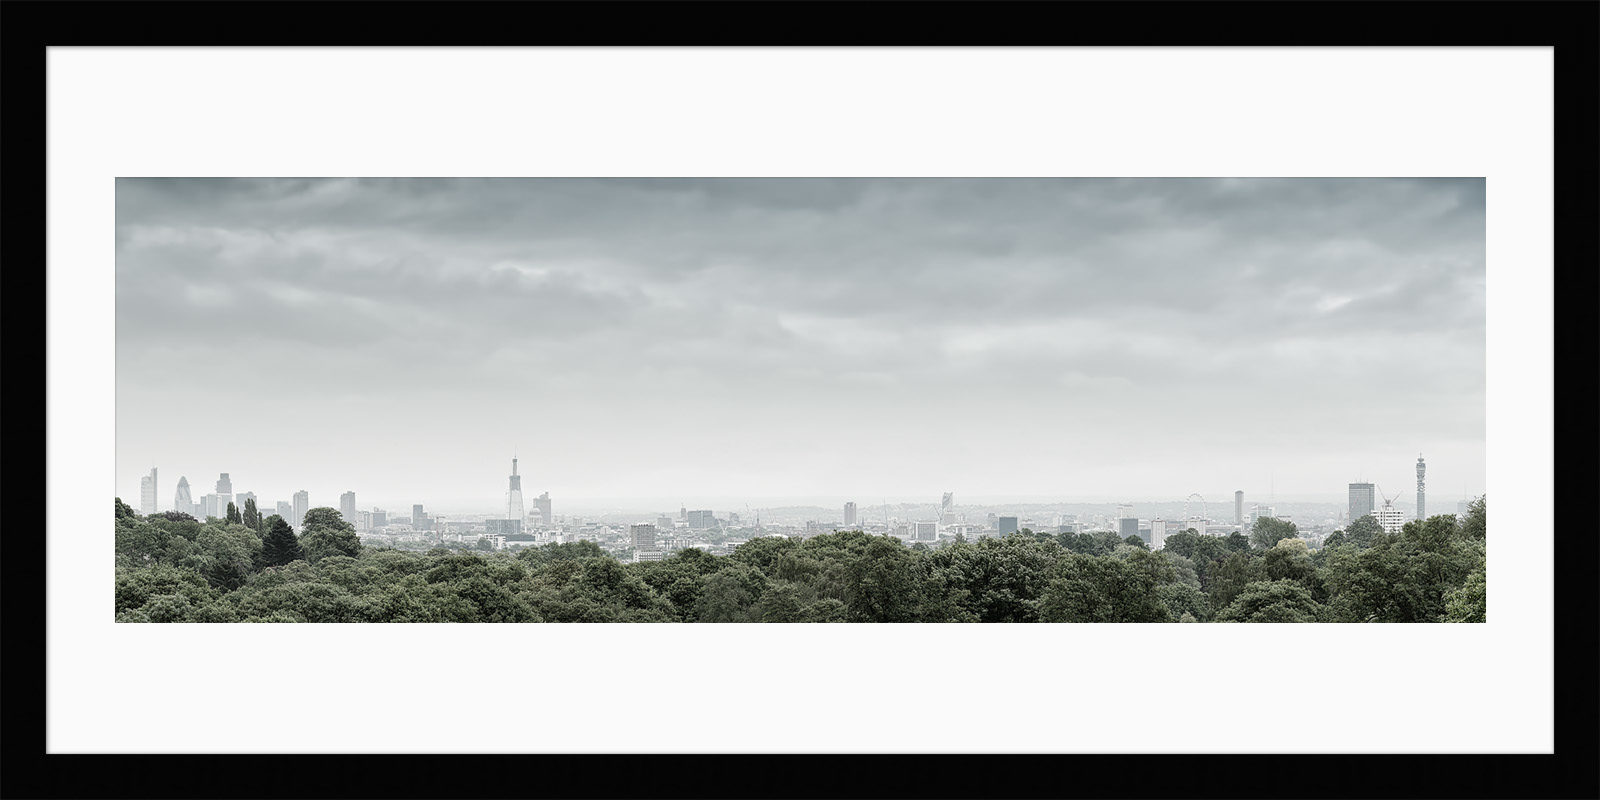 Hampstead Heath View 2010 - Framed Photo Print of London